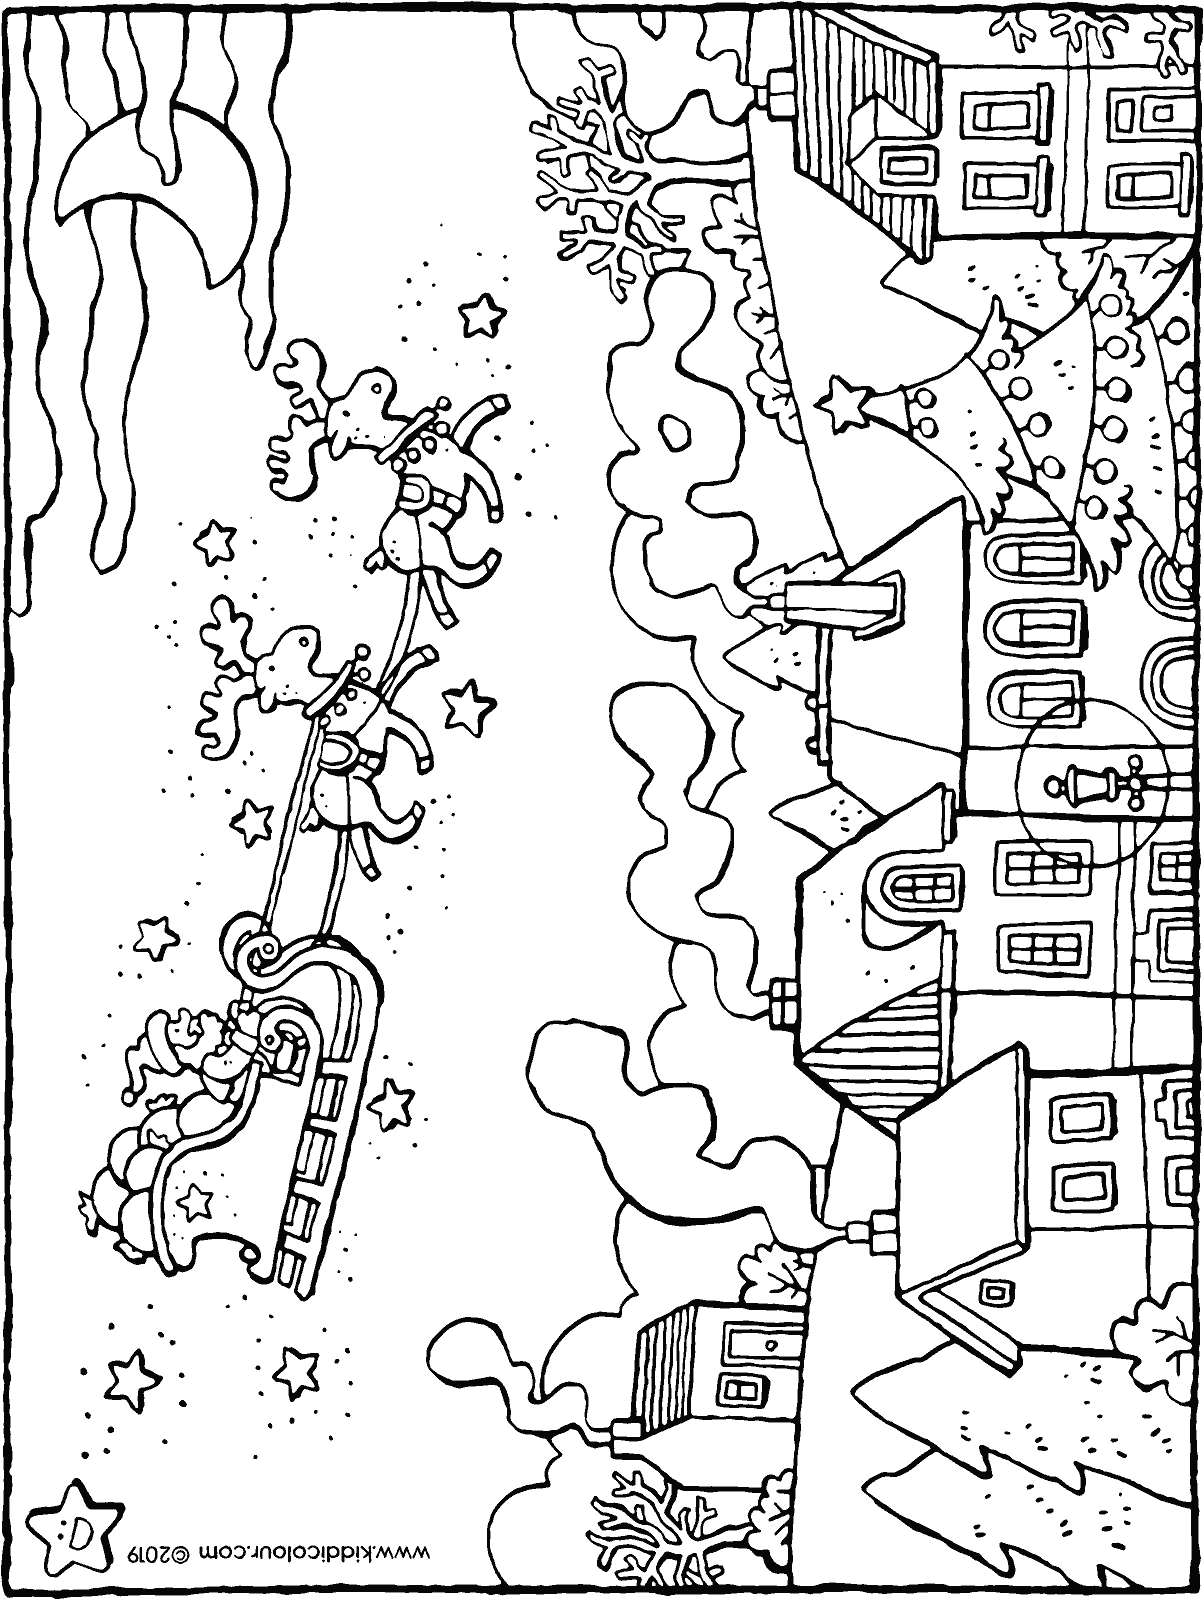 Father Christmas flying over the village in his sleigh colouring page drawing picture 01H